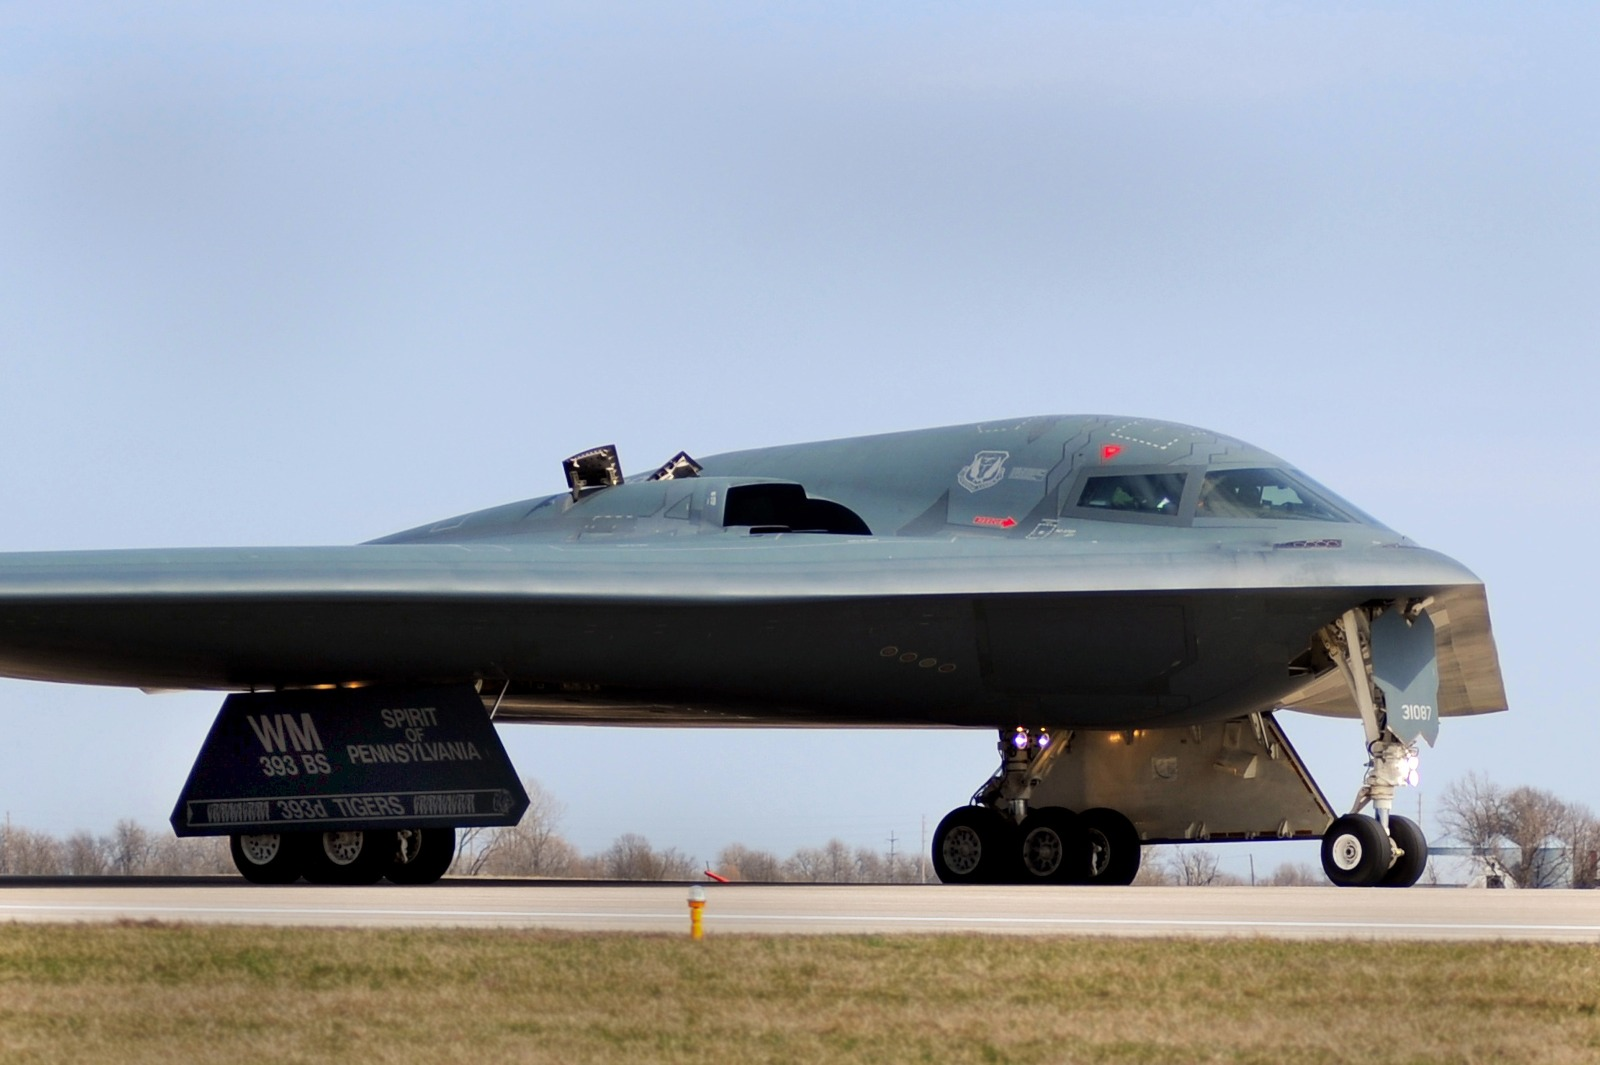 The U.S. Air Force's B-21 Long-Range Stealth Bomber Might Be